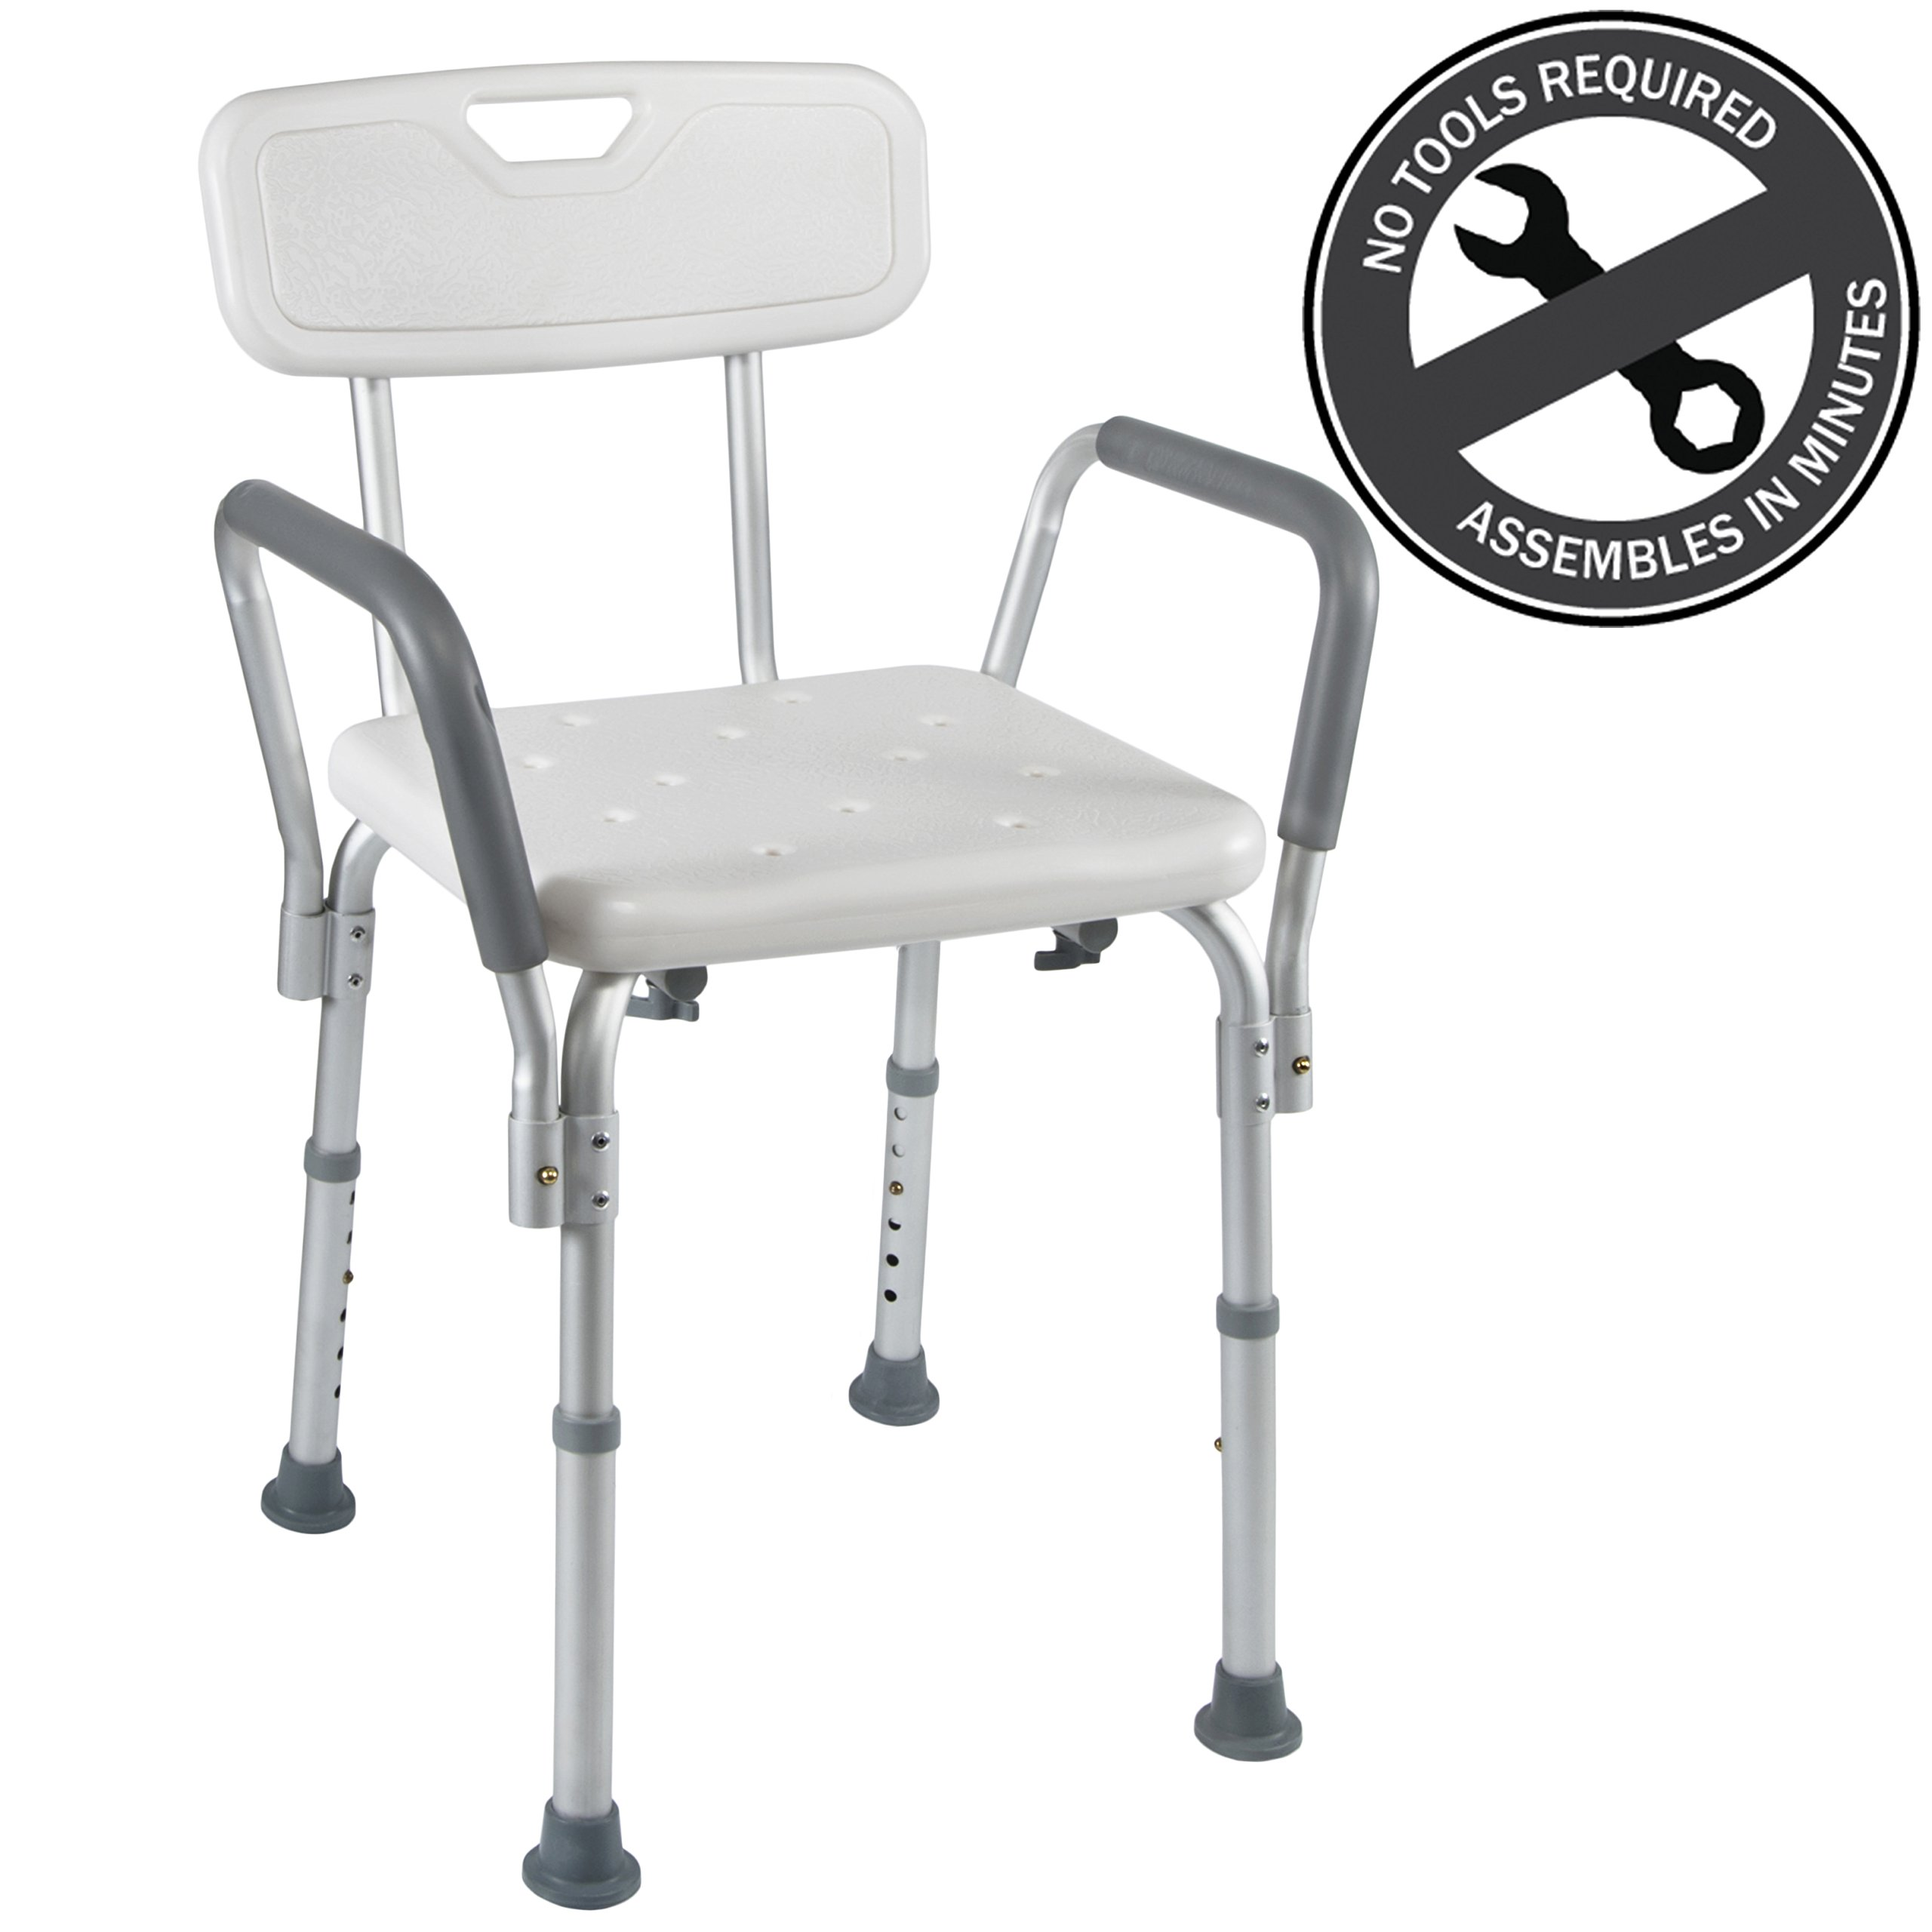 Cheap Handicapped Bathtub Seat, find Handicapped Bathtub Seat deals ...